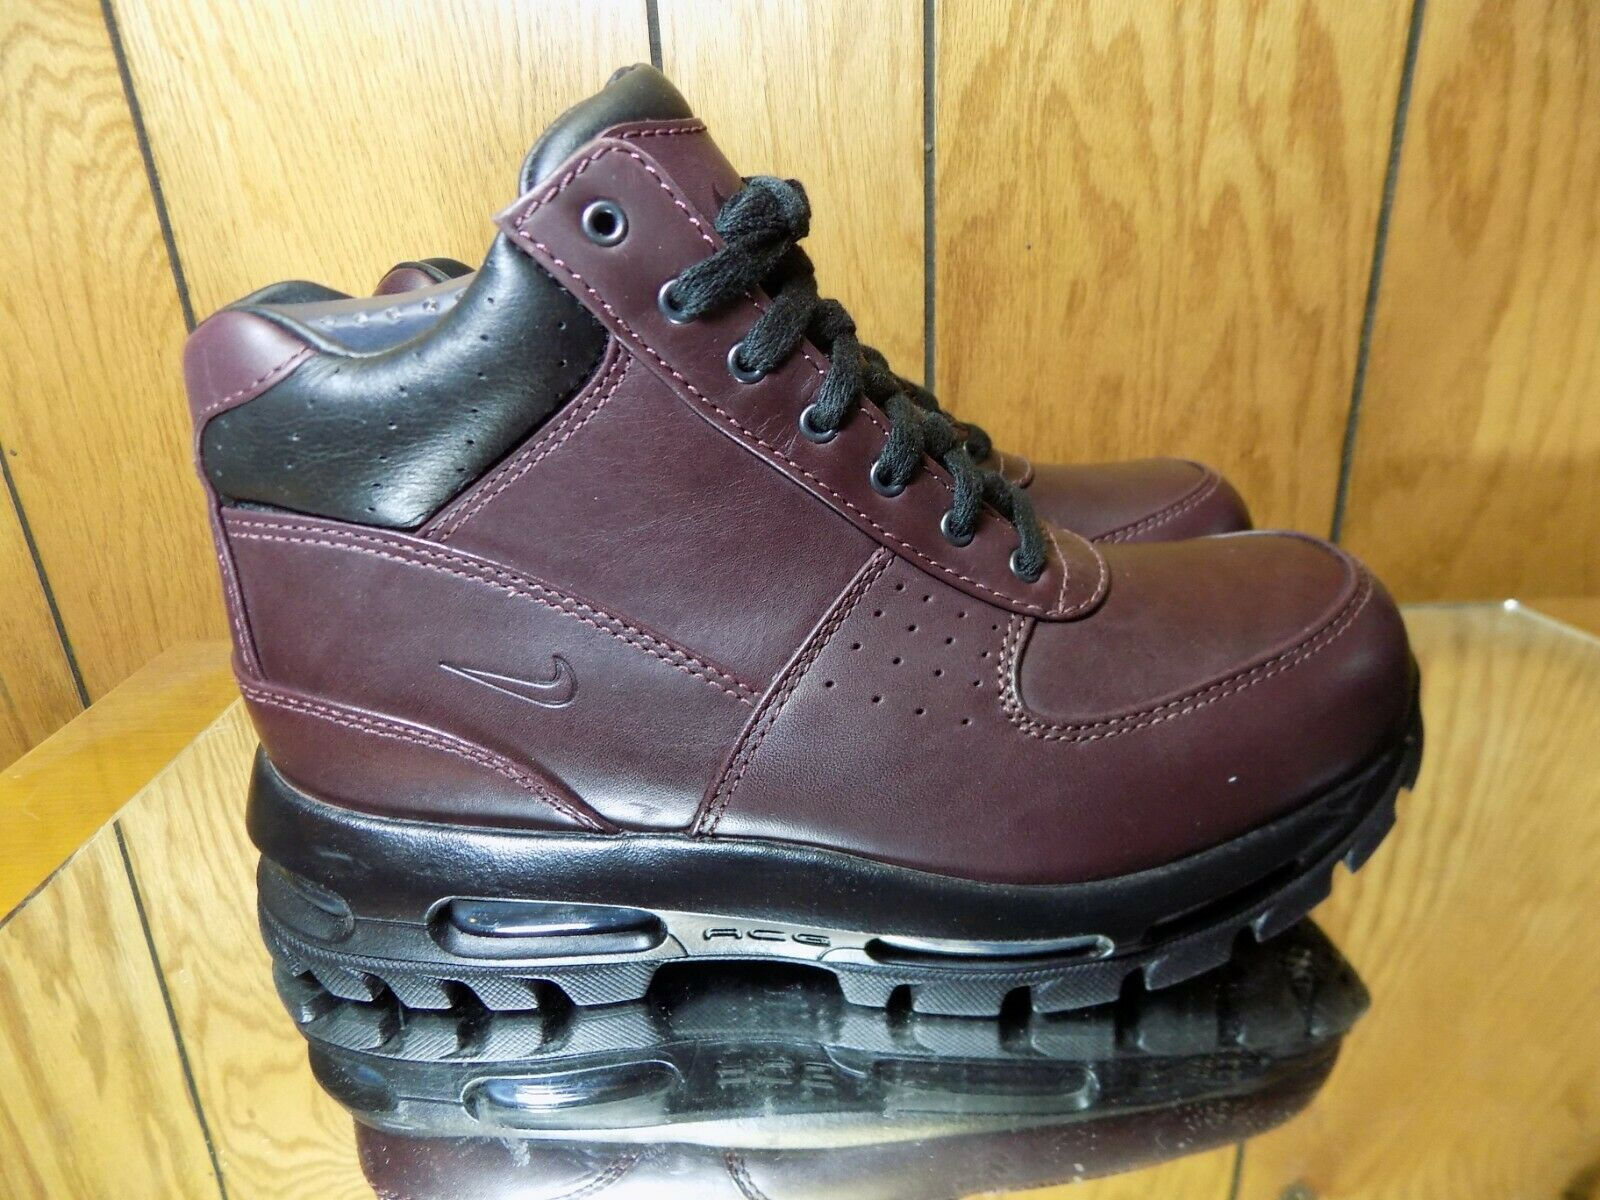 Nike Men's Air Max Goadome Burgundy Leather Boots Size 8